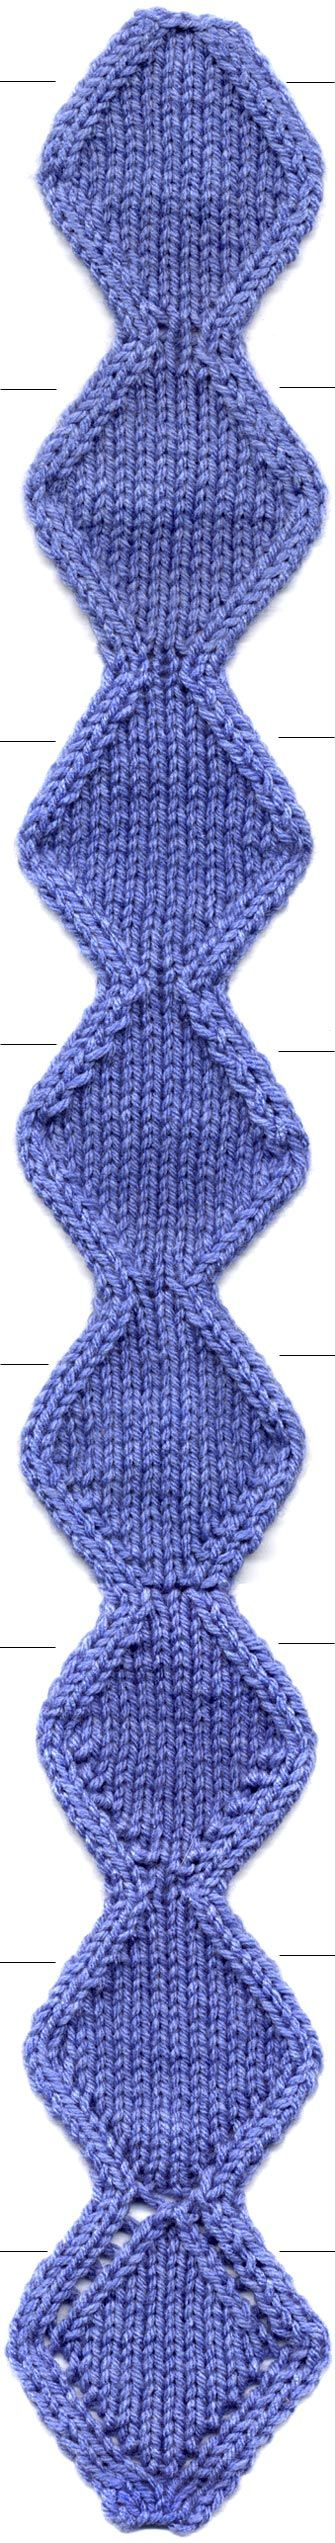 Increase Decrease Knitting Stitches : 1000+ ideas about Knitting Help on Pinterest Linen stitch, Bind off knittin...